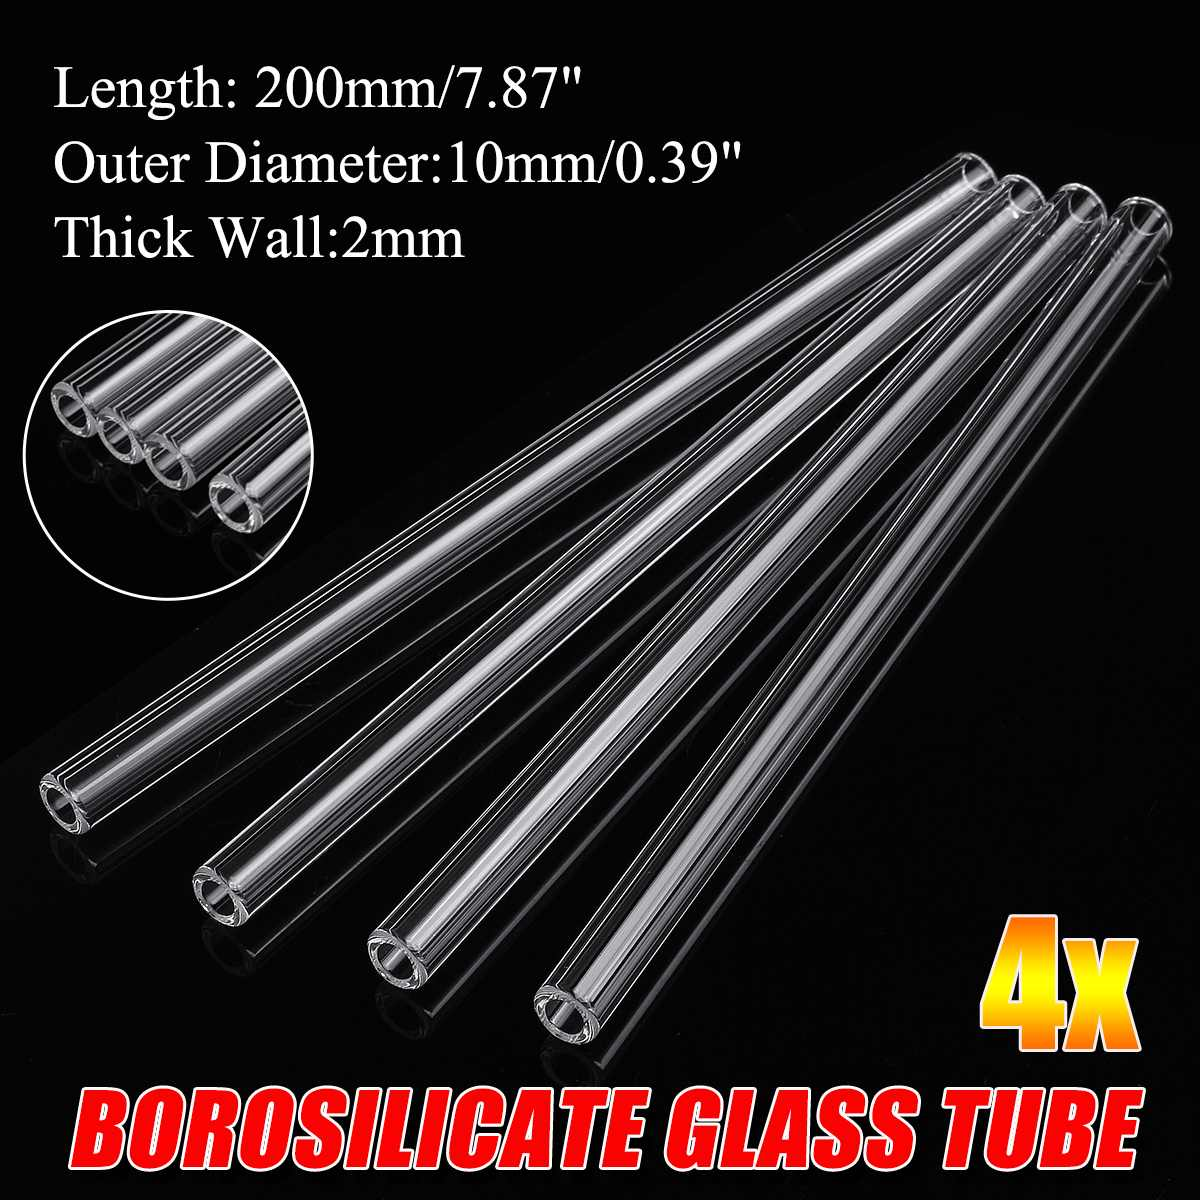 4x 200mm OD 10mm 2mm Thick Wall Borosilicate Glass Blowing Tube Thick Transparent Wall Borosilicate Glass Blowing Tube Mixer